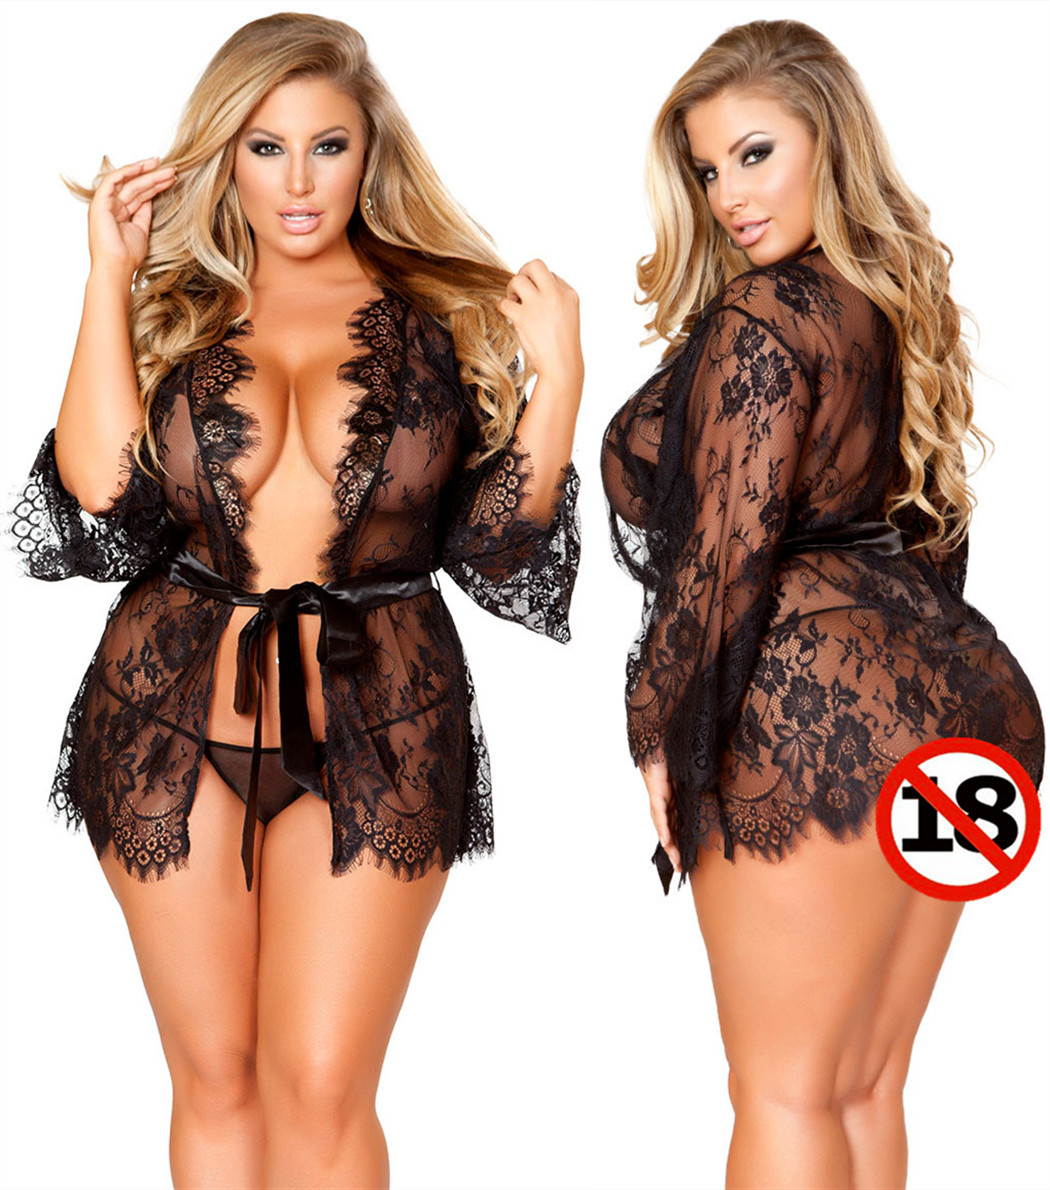 <font><b>Sexy</b></font> Lace <font><b>Lingerie</b></font> Hot Plus Size Erotic Transparent Women Babydoll Dress Costume Mini Open Underwear Nightwear 5XL 6XL <font><b>7XL</b></font> image